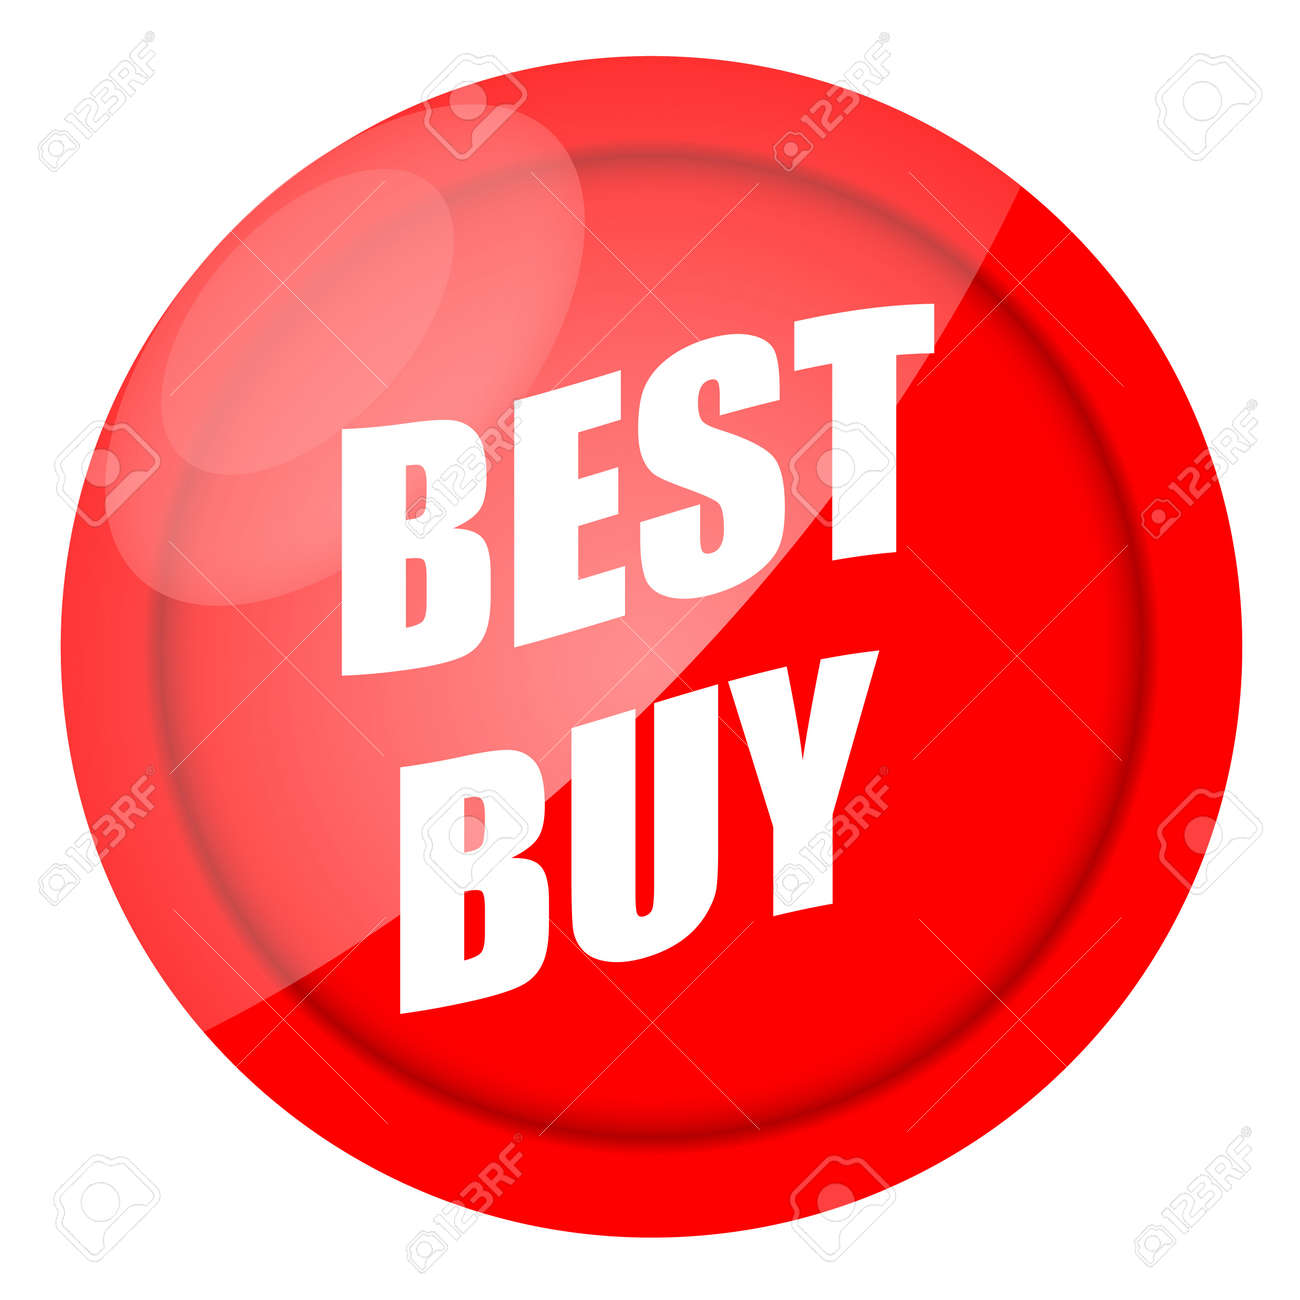 Best buy red sticker isolated over white background Stock Photo - 10048662